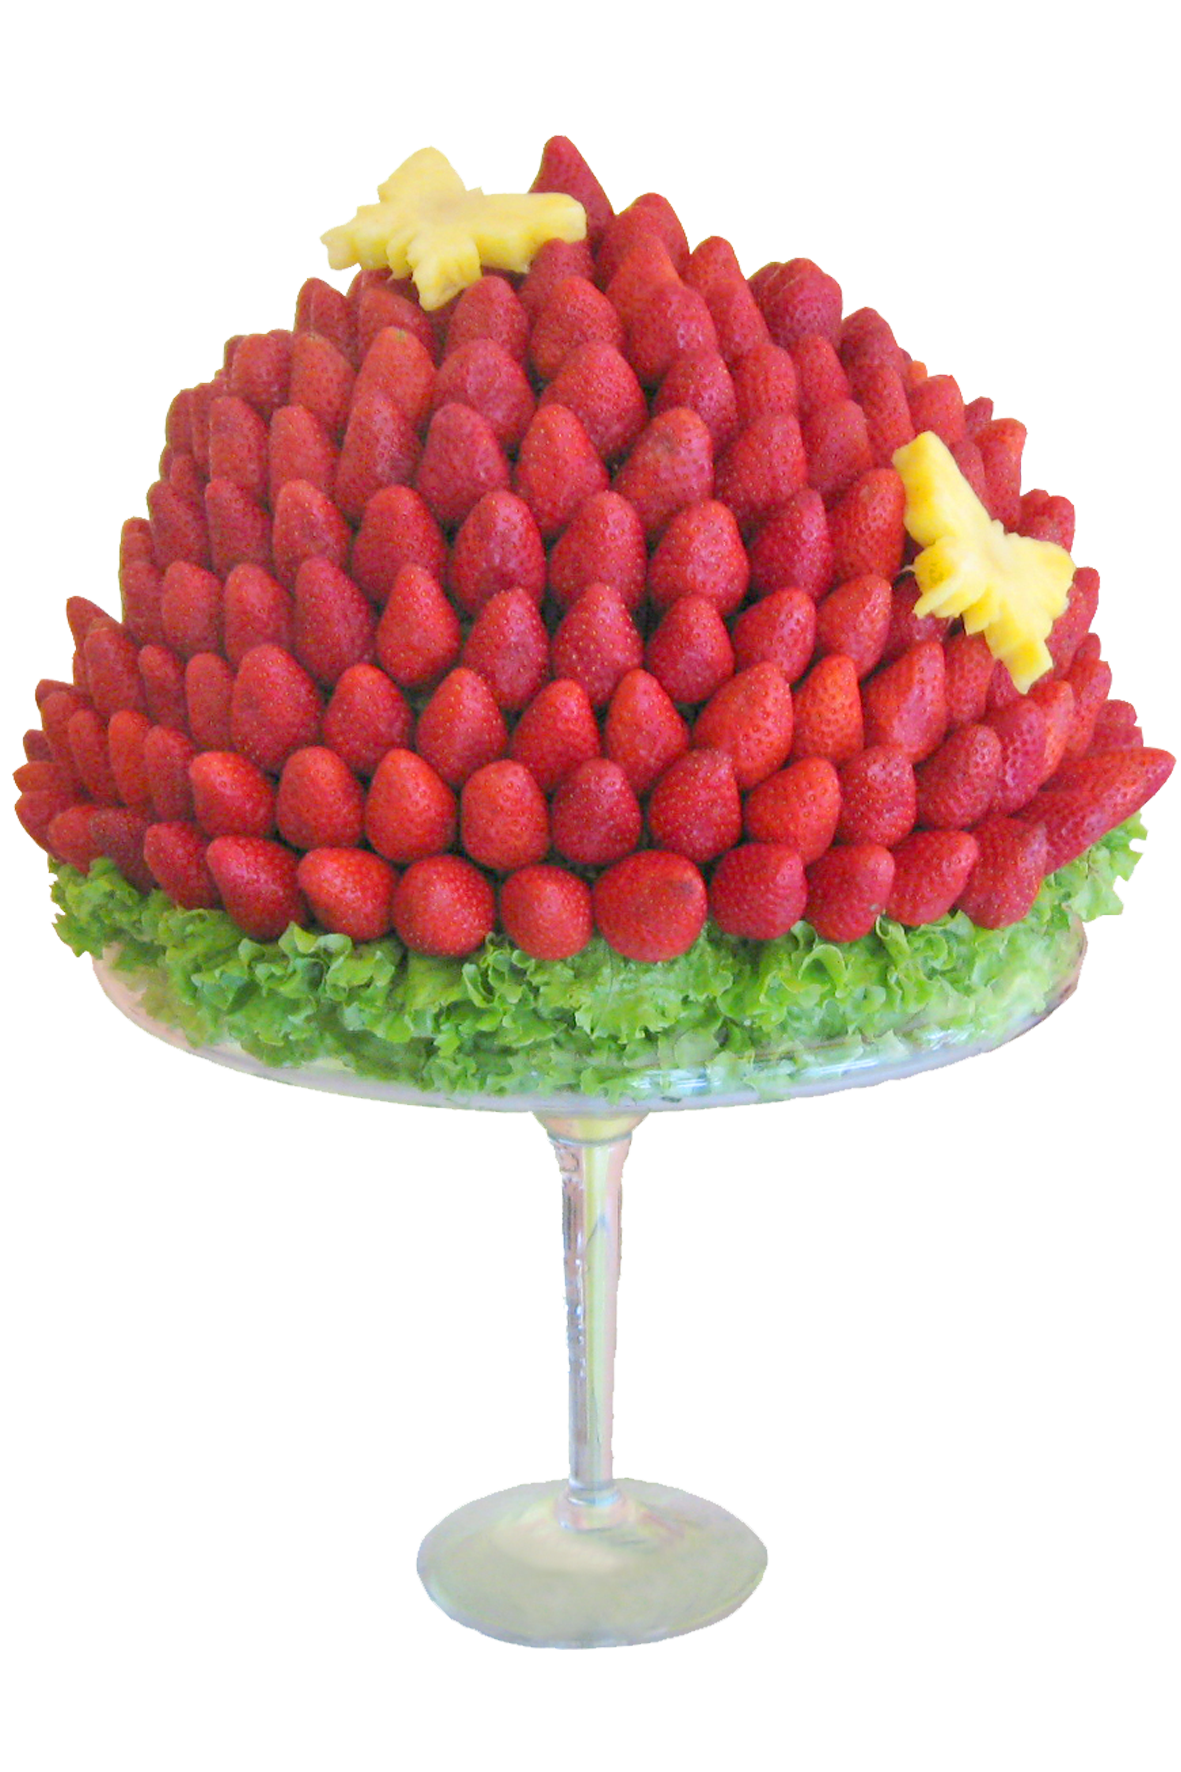 FRUIT ART - Bouquettes of Fruit   - BulgarianTextile.com